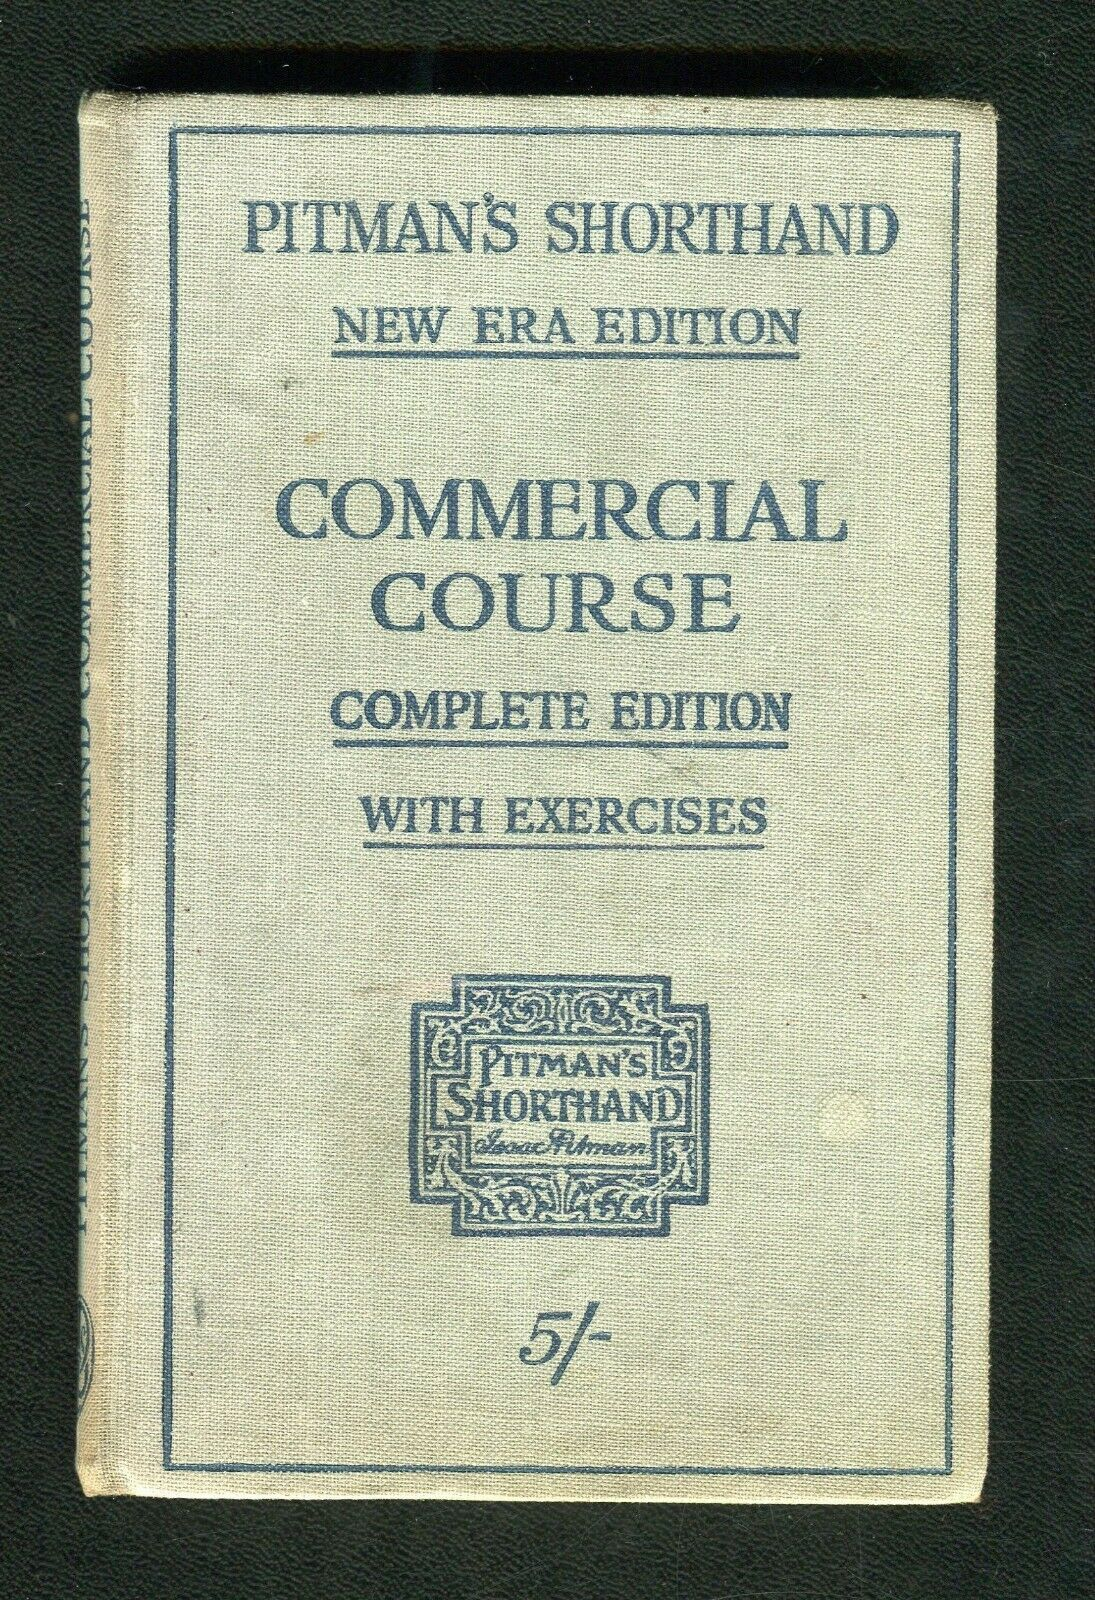 Pitman's Shorthand Commercial Course book image